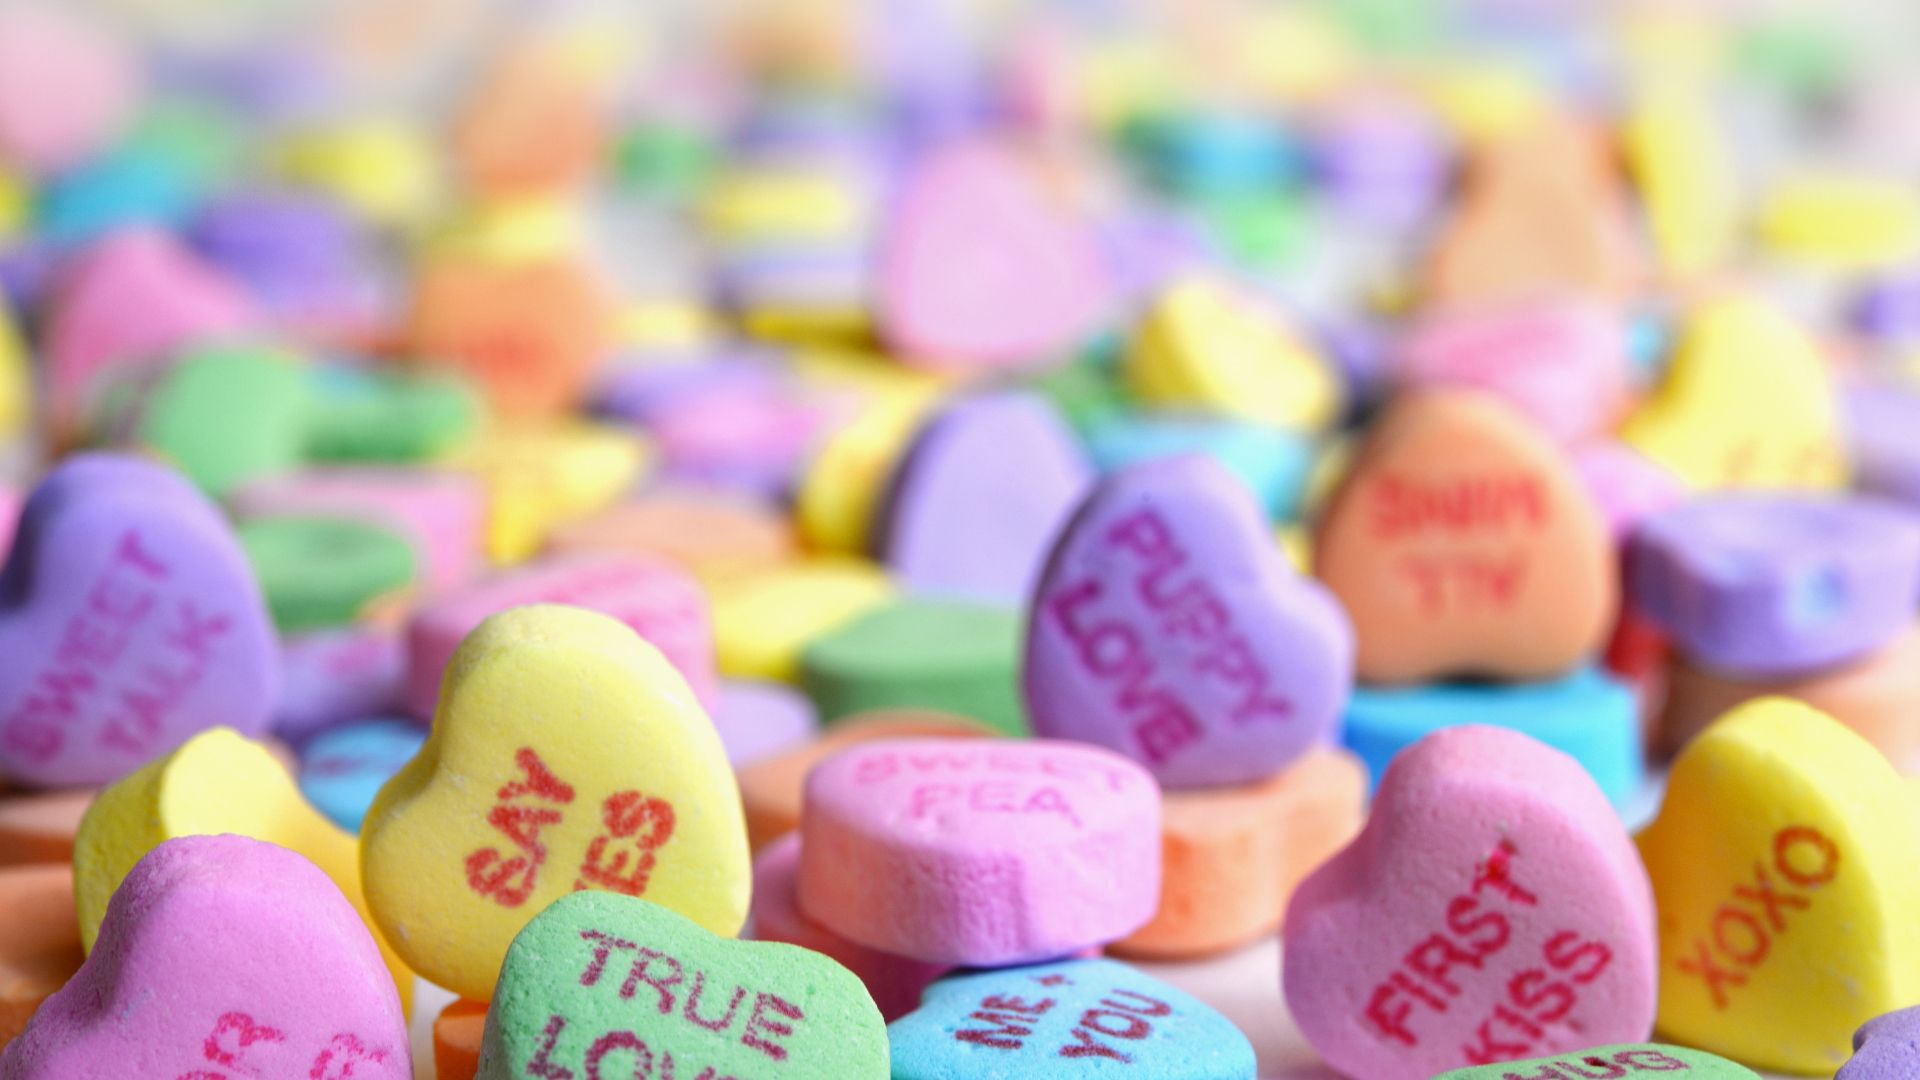 a colorful cluster of candy hearts